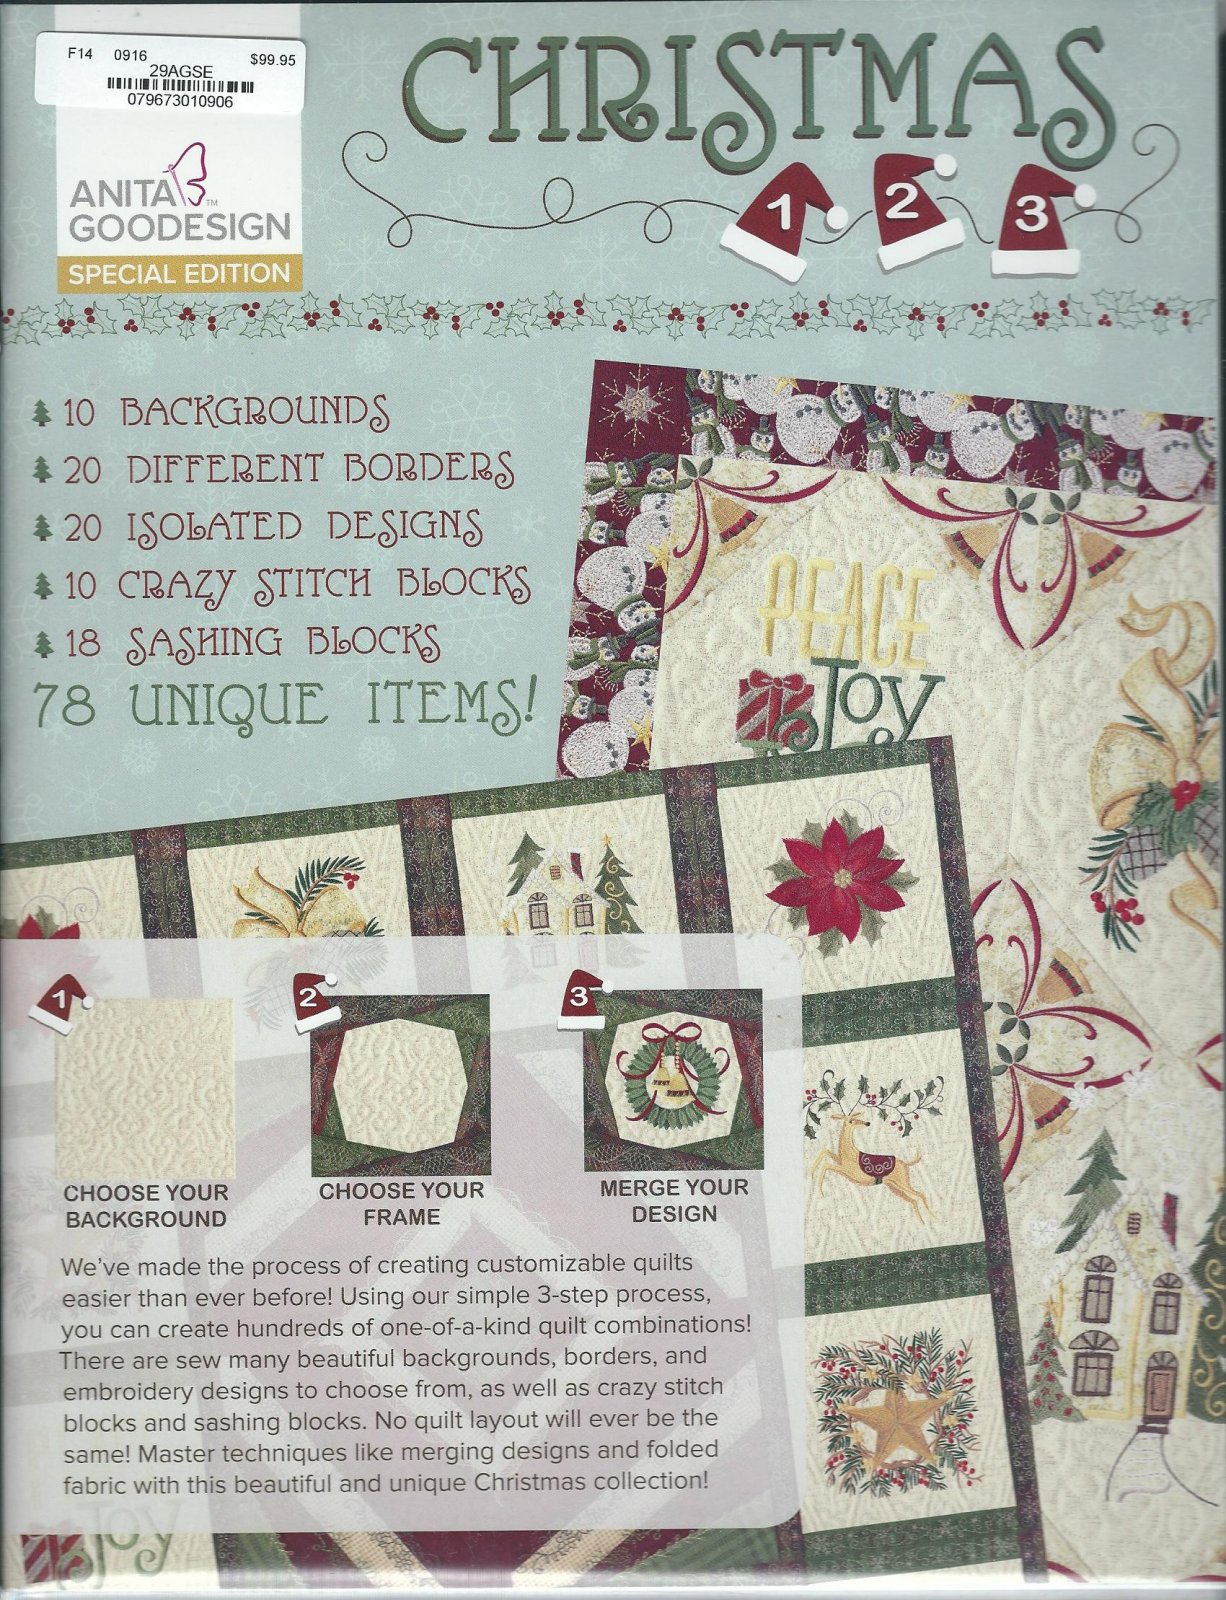 Anita Goodesign - Special Edition - Christmas 123 - 79673010906 on